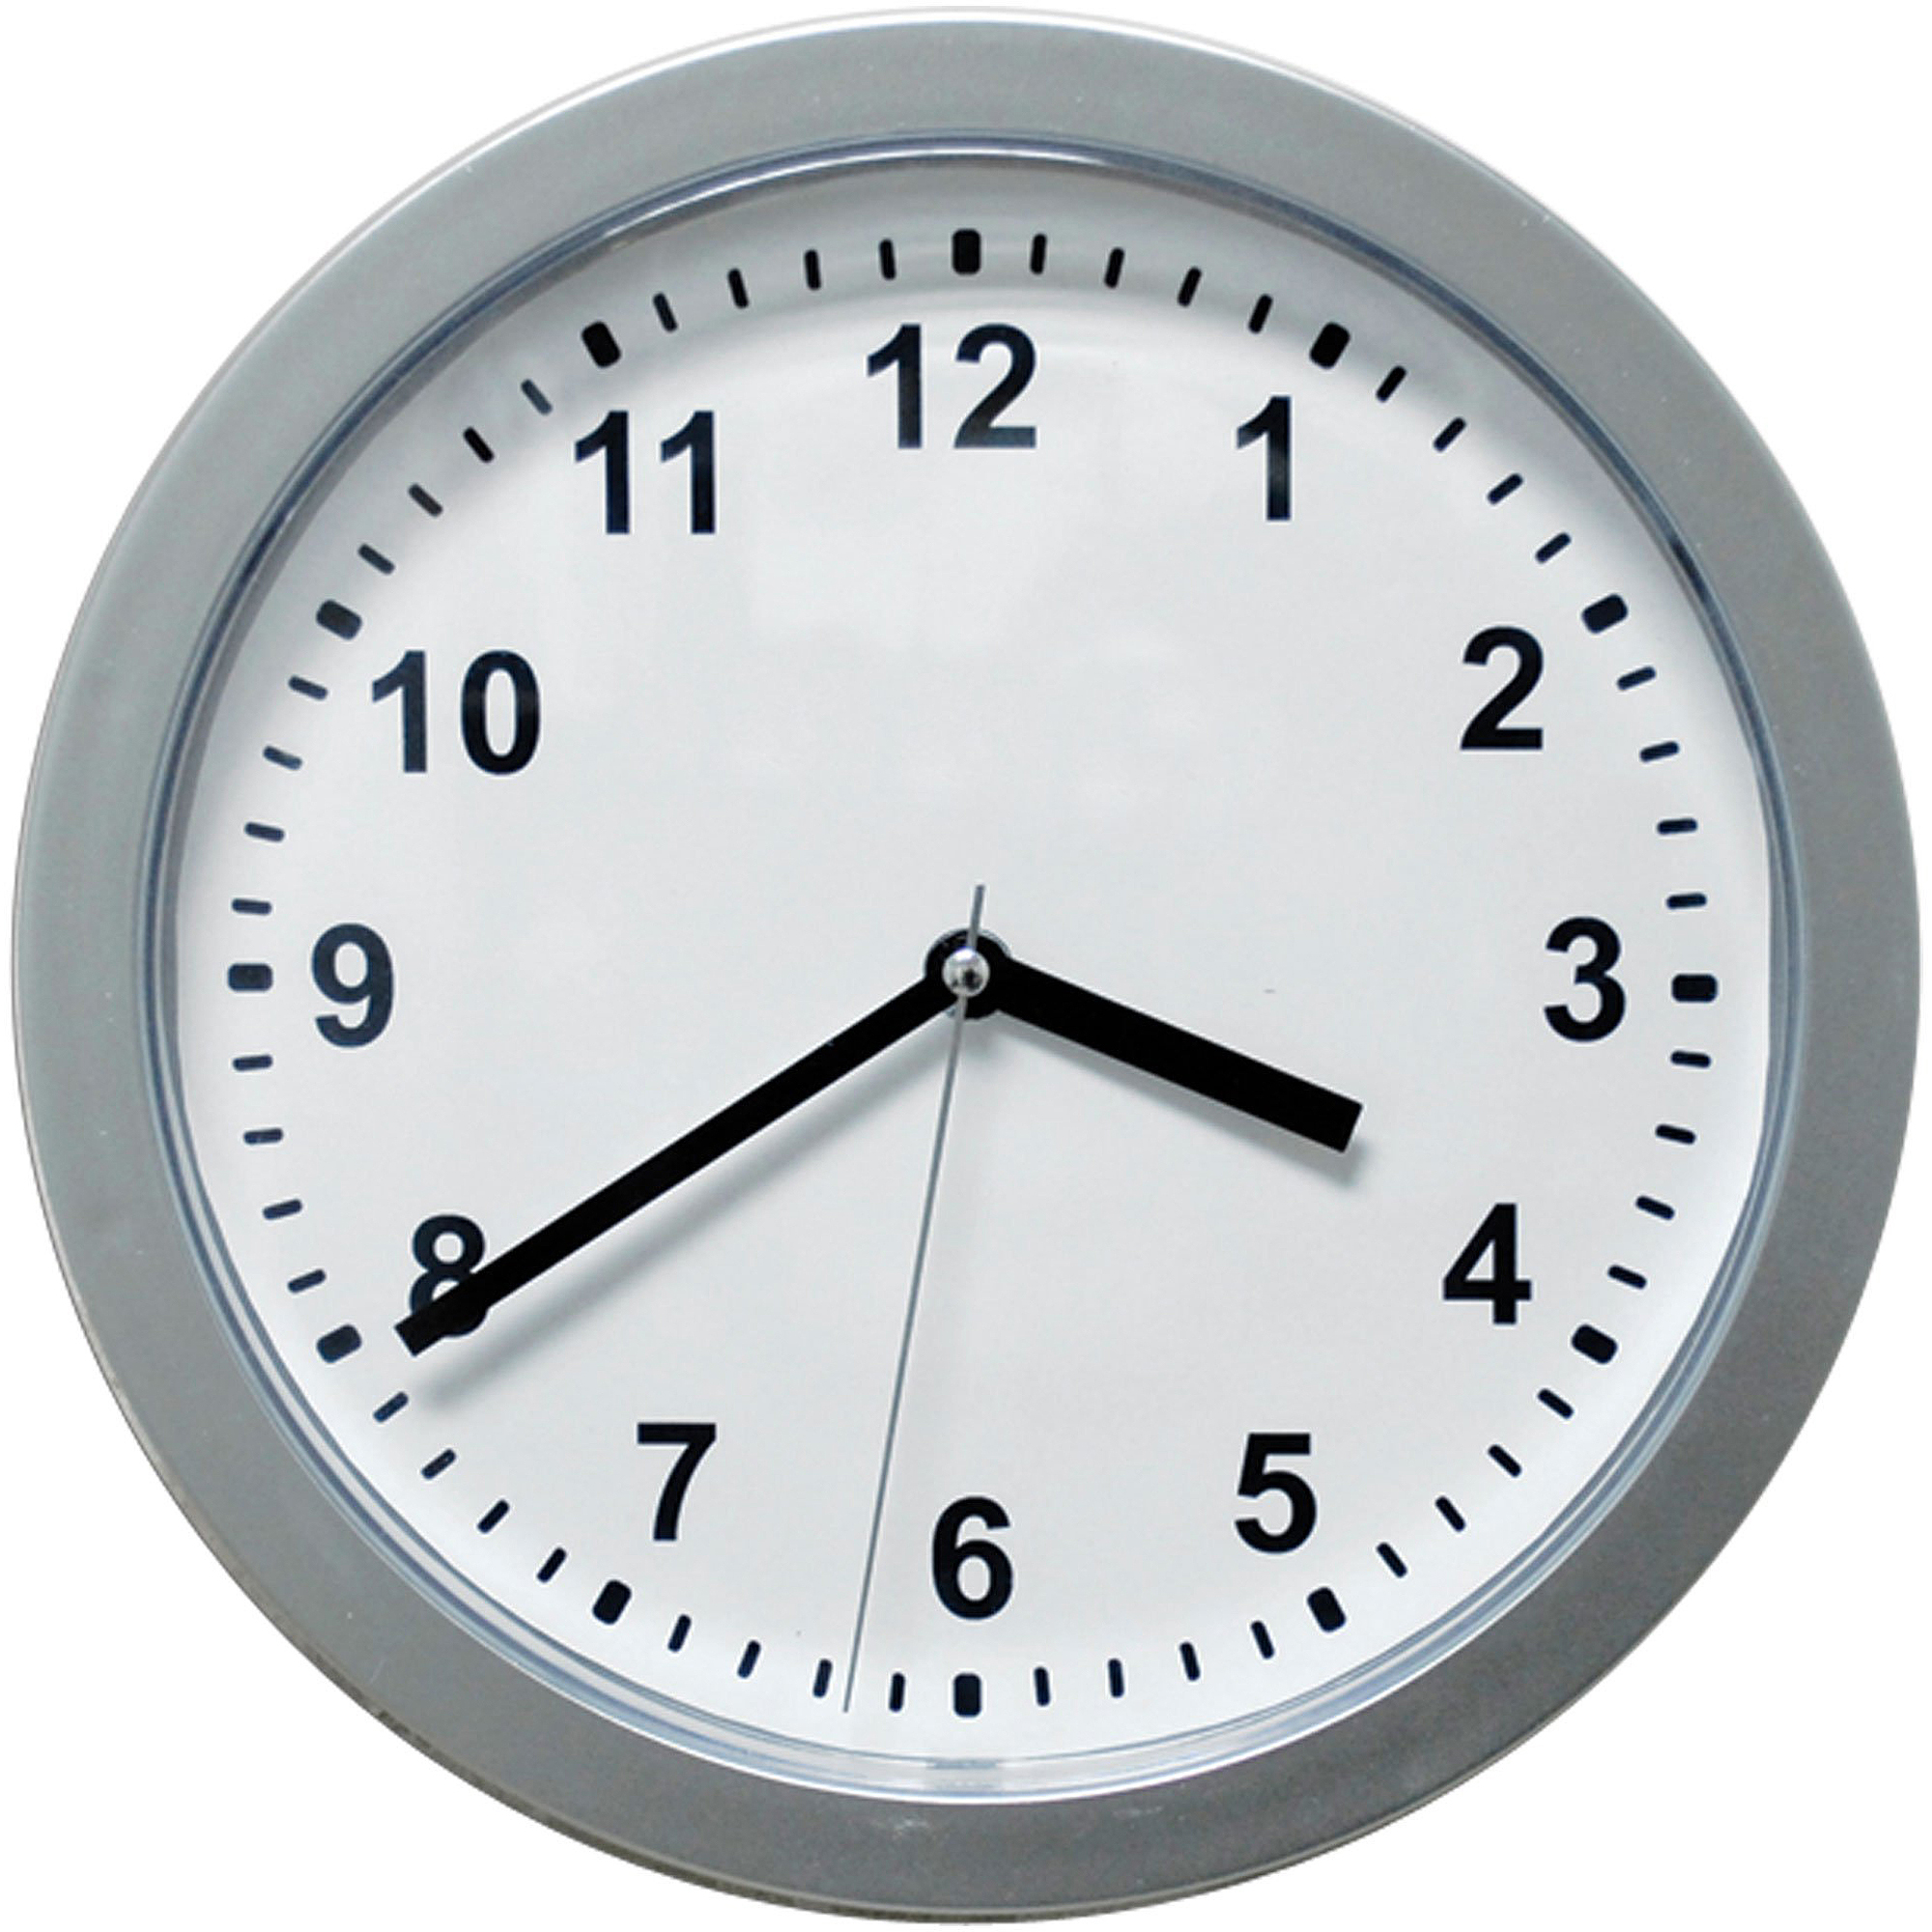 10 silver wall clock with hidden safe walmart amipublicfo Image collections